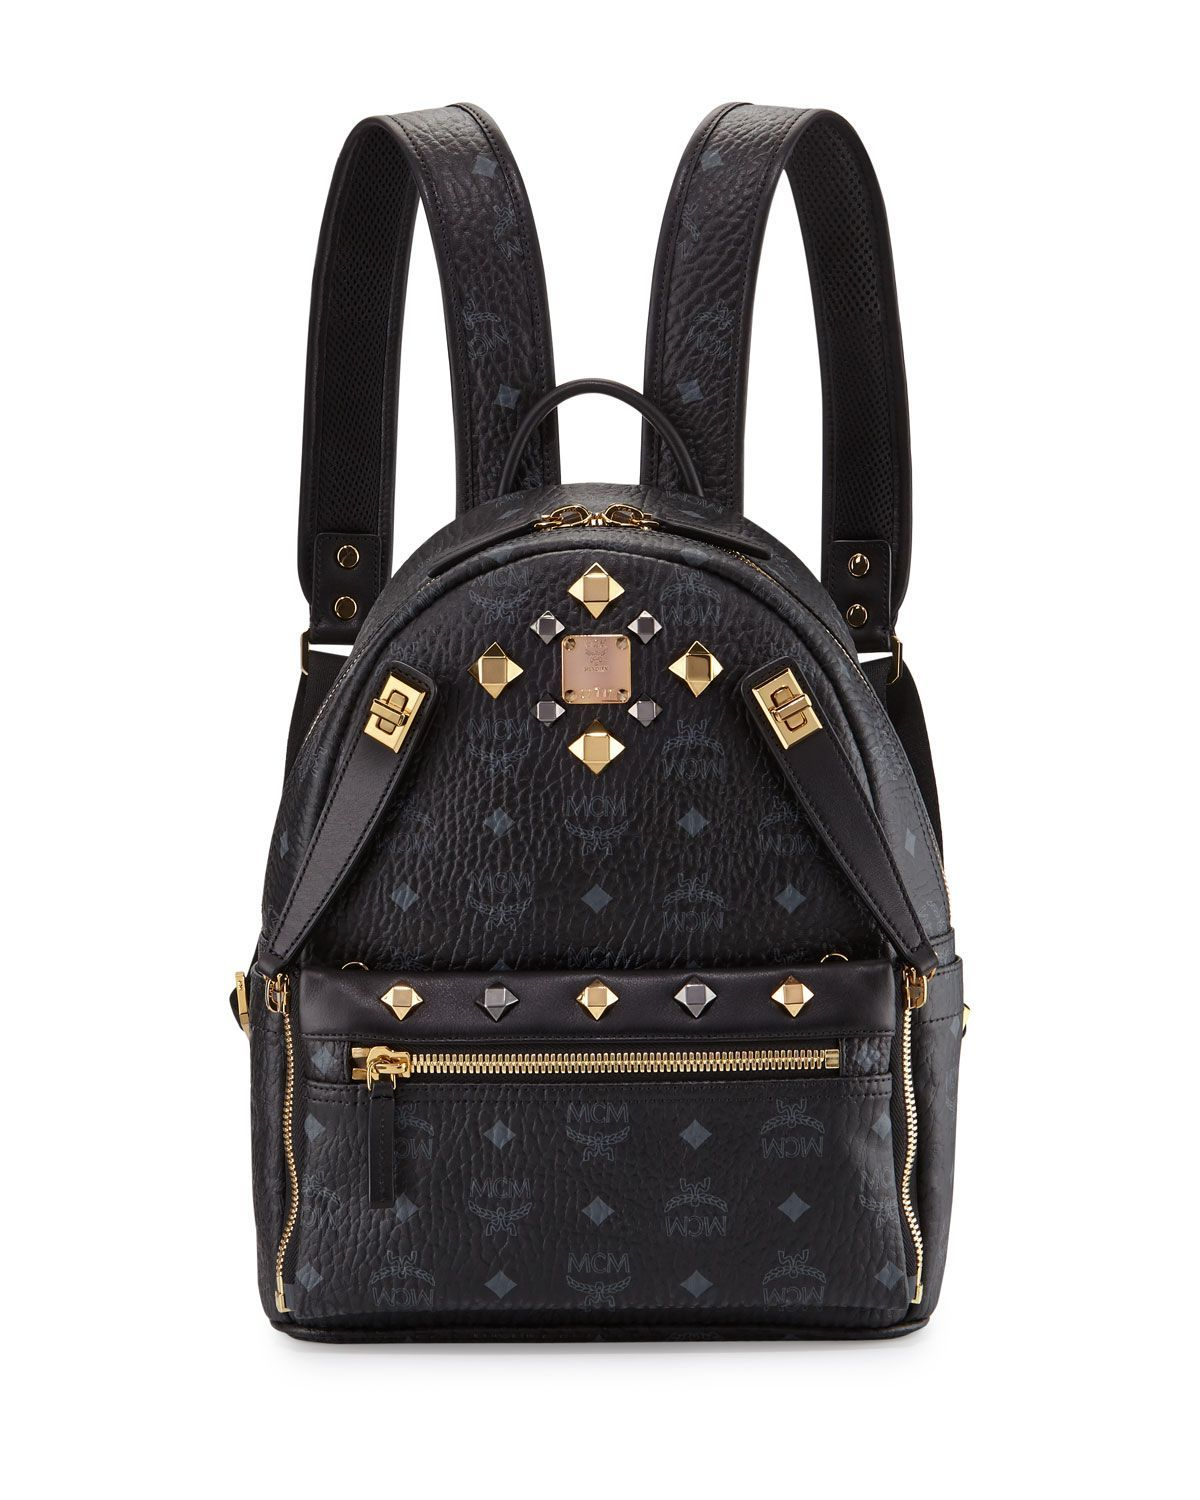 24957b0a1c24d Women s MCM Backpacks - Lyst - Your World of Fashion. Dual Stark Small ...